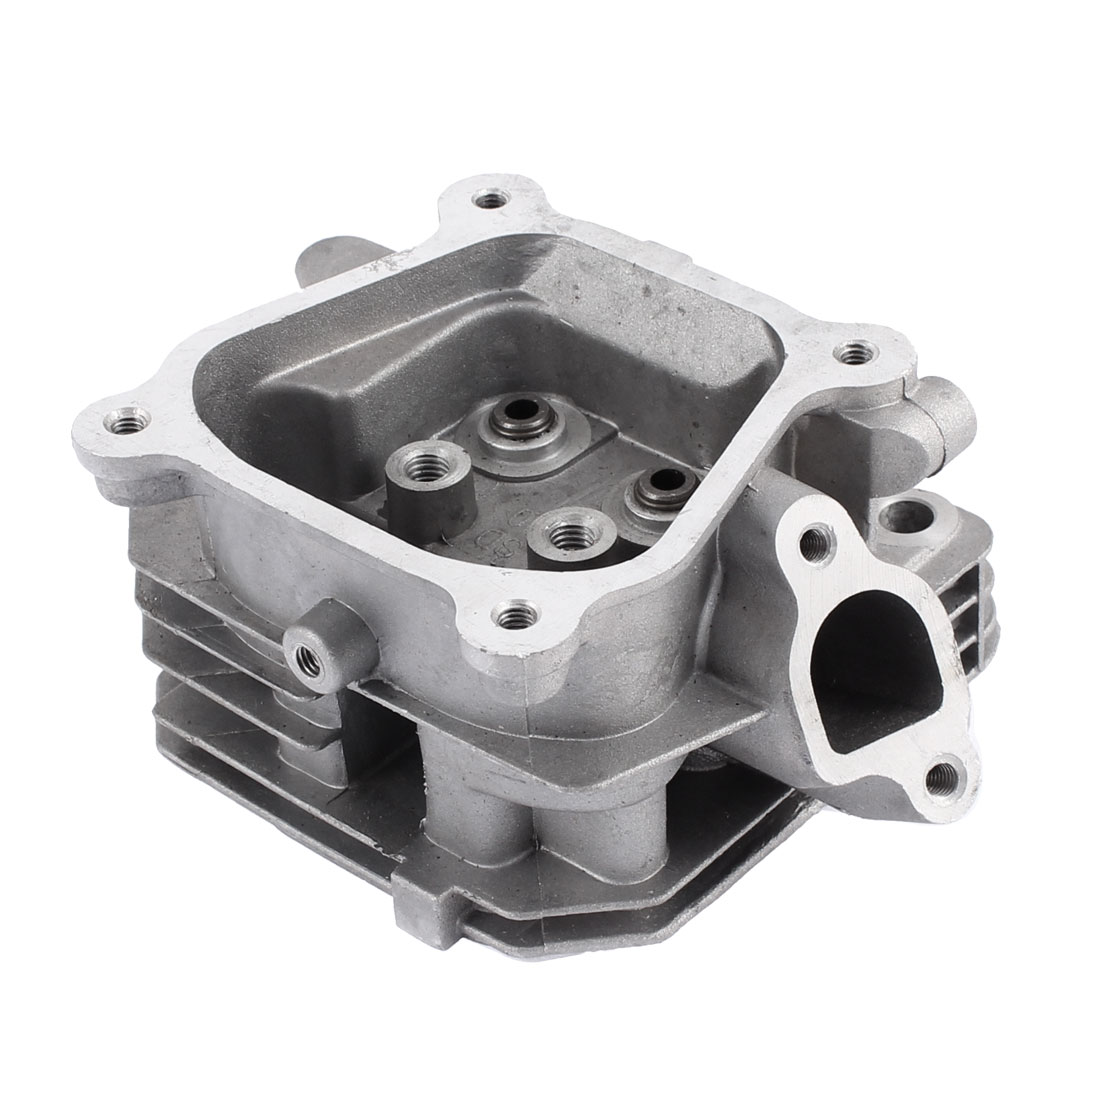 Generator Cylinder Head Assembly 168 Gasoline Engine 5.5 6.5 HP 168F